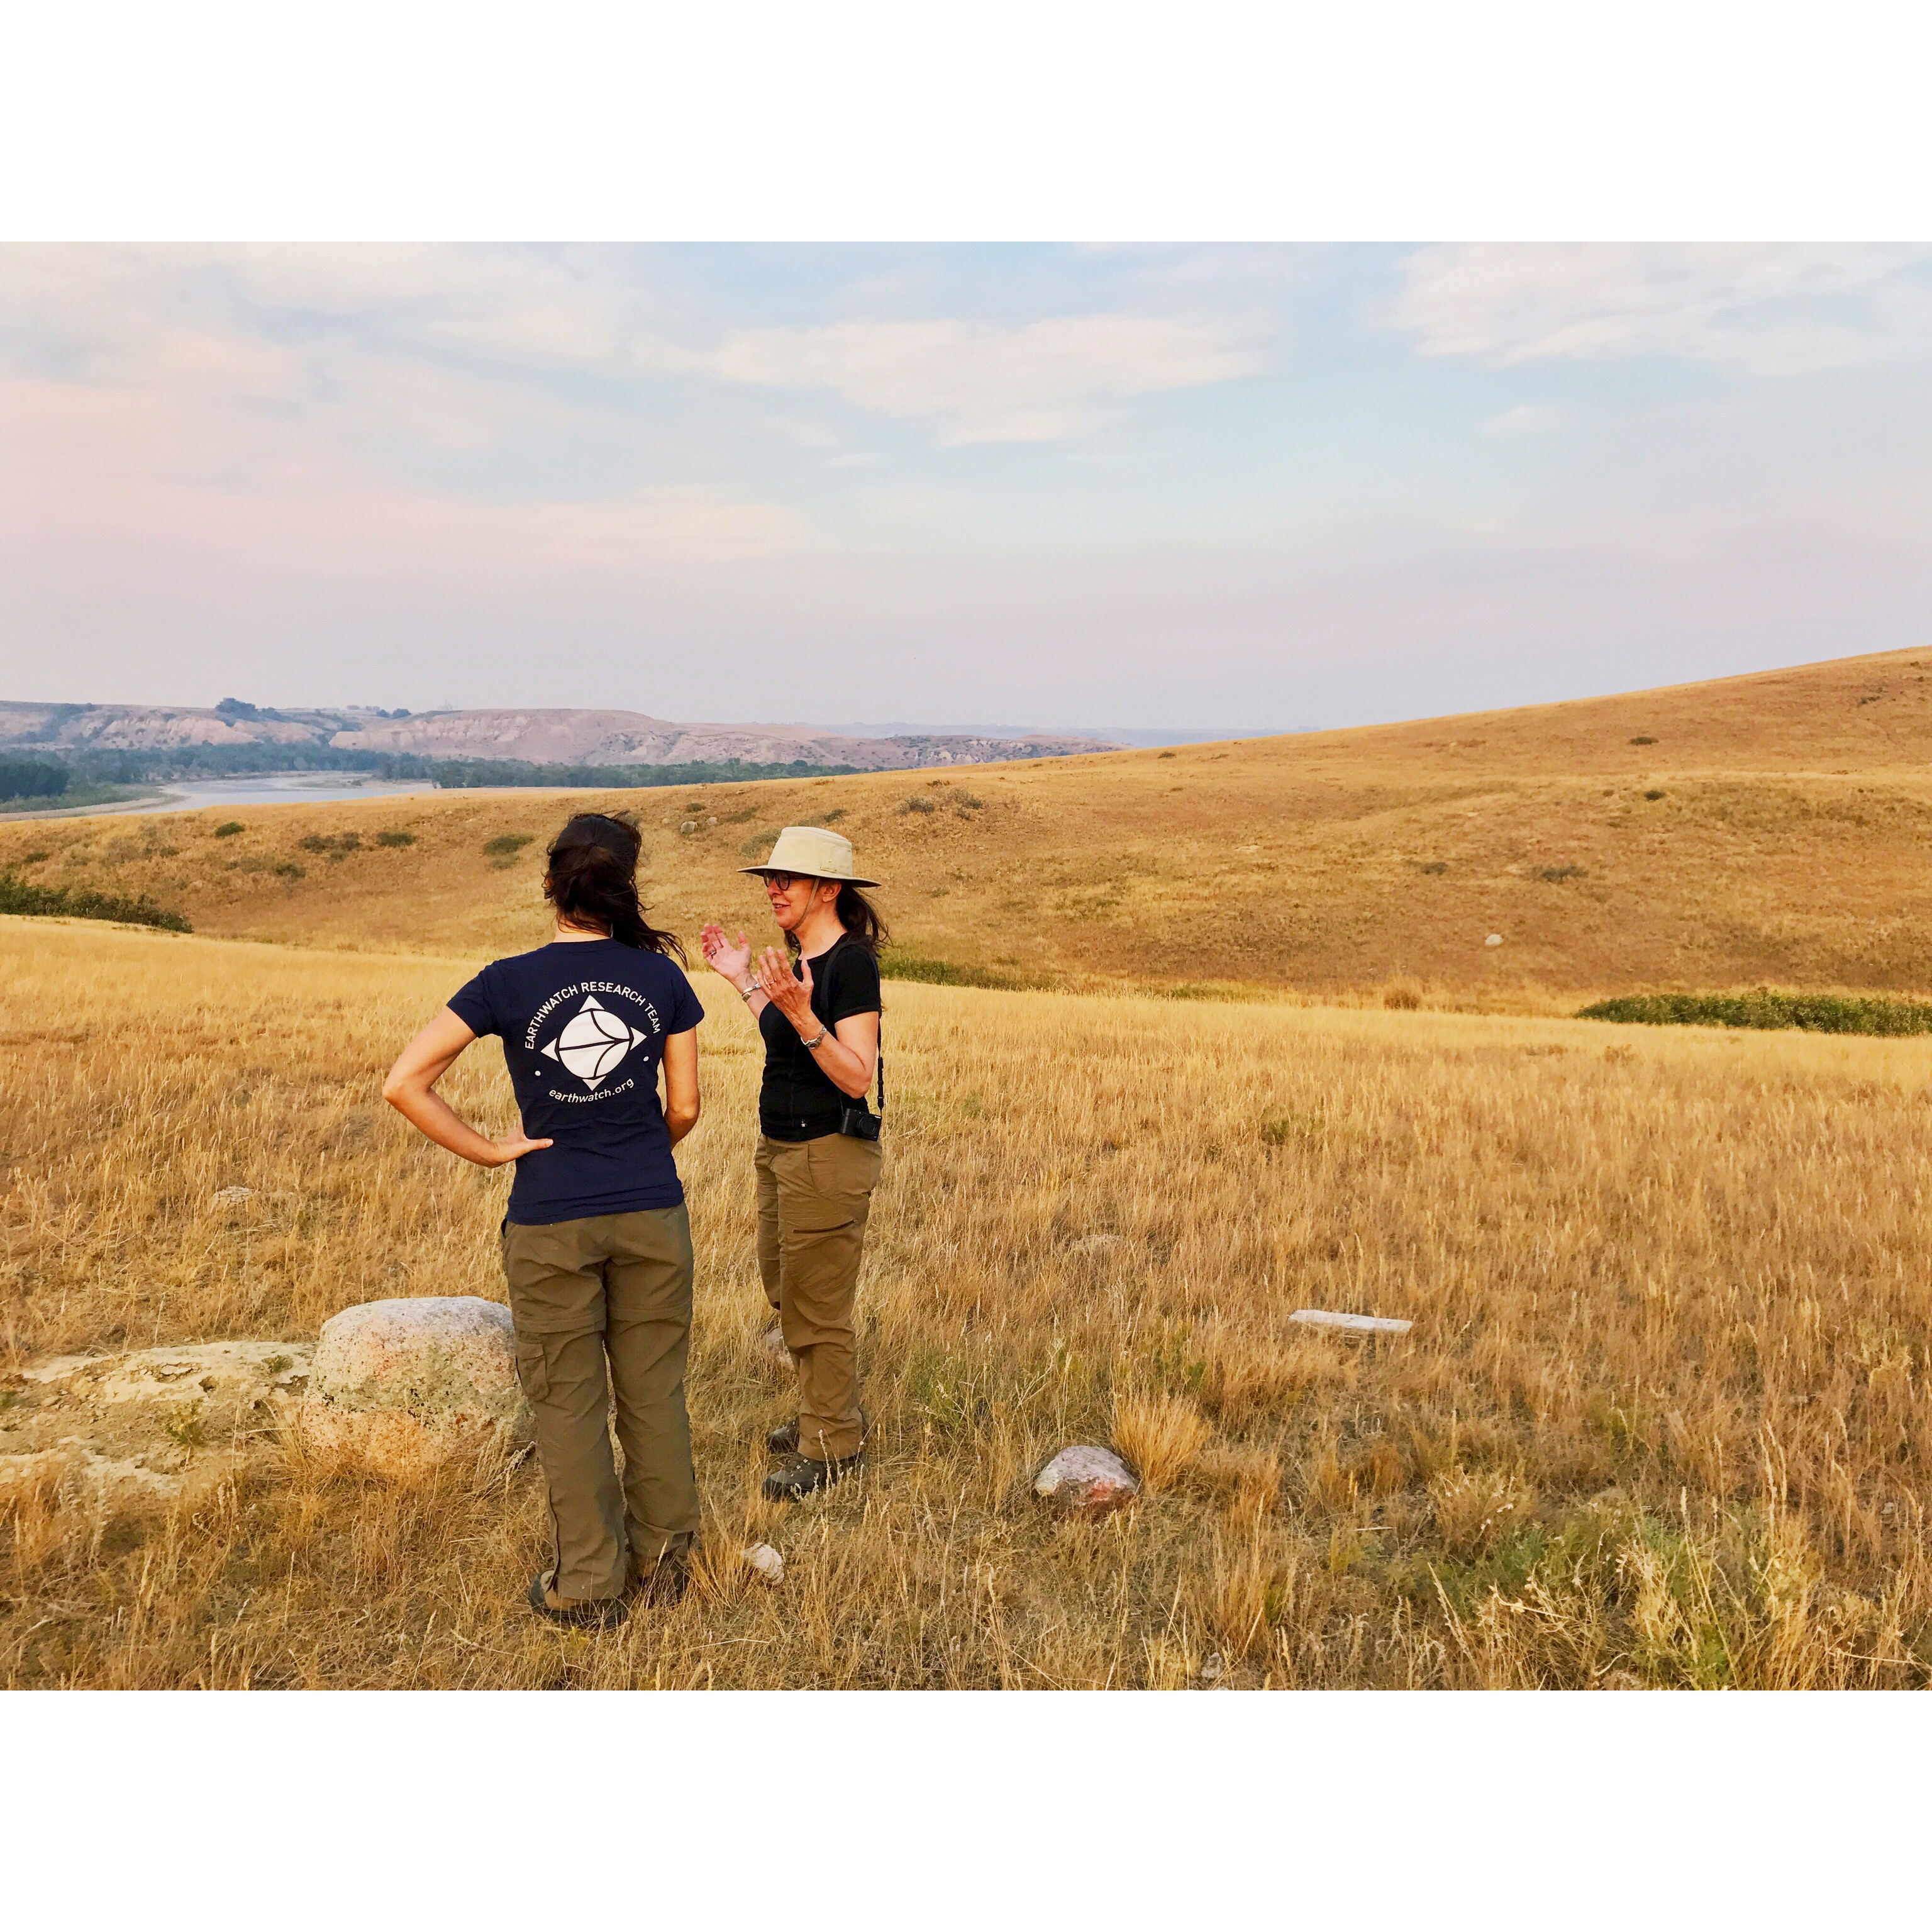 Cristina, on the right, in the field with Earthwatch Senior Program Manager Caroline Dunn. (Photo: Stephen Hart)